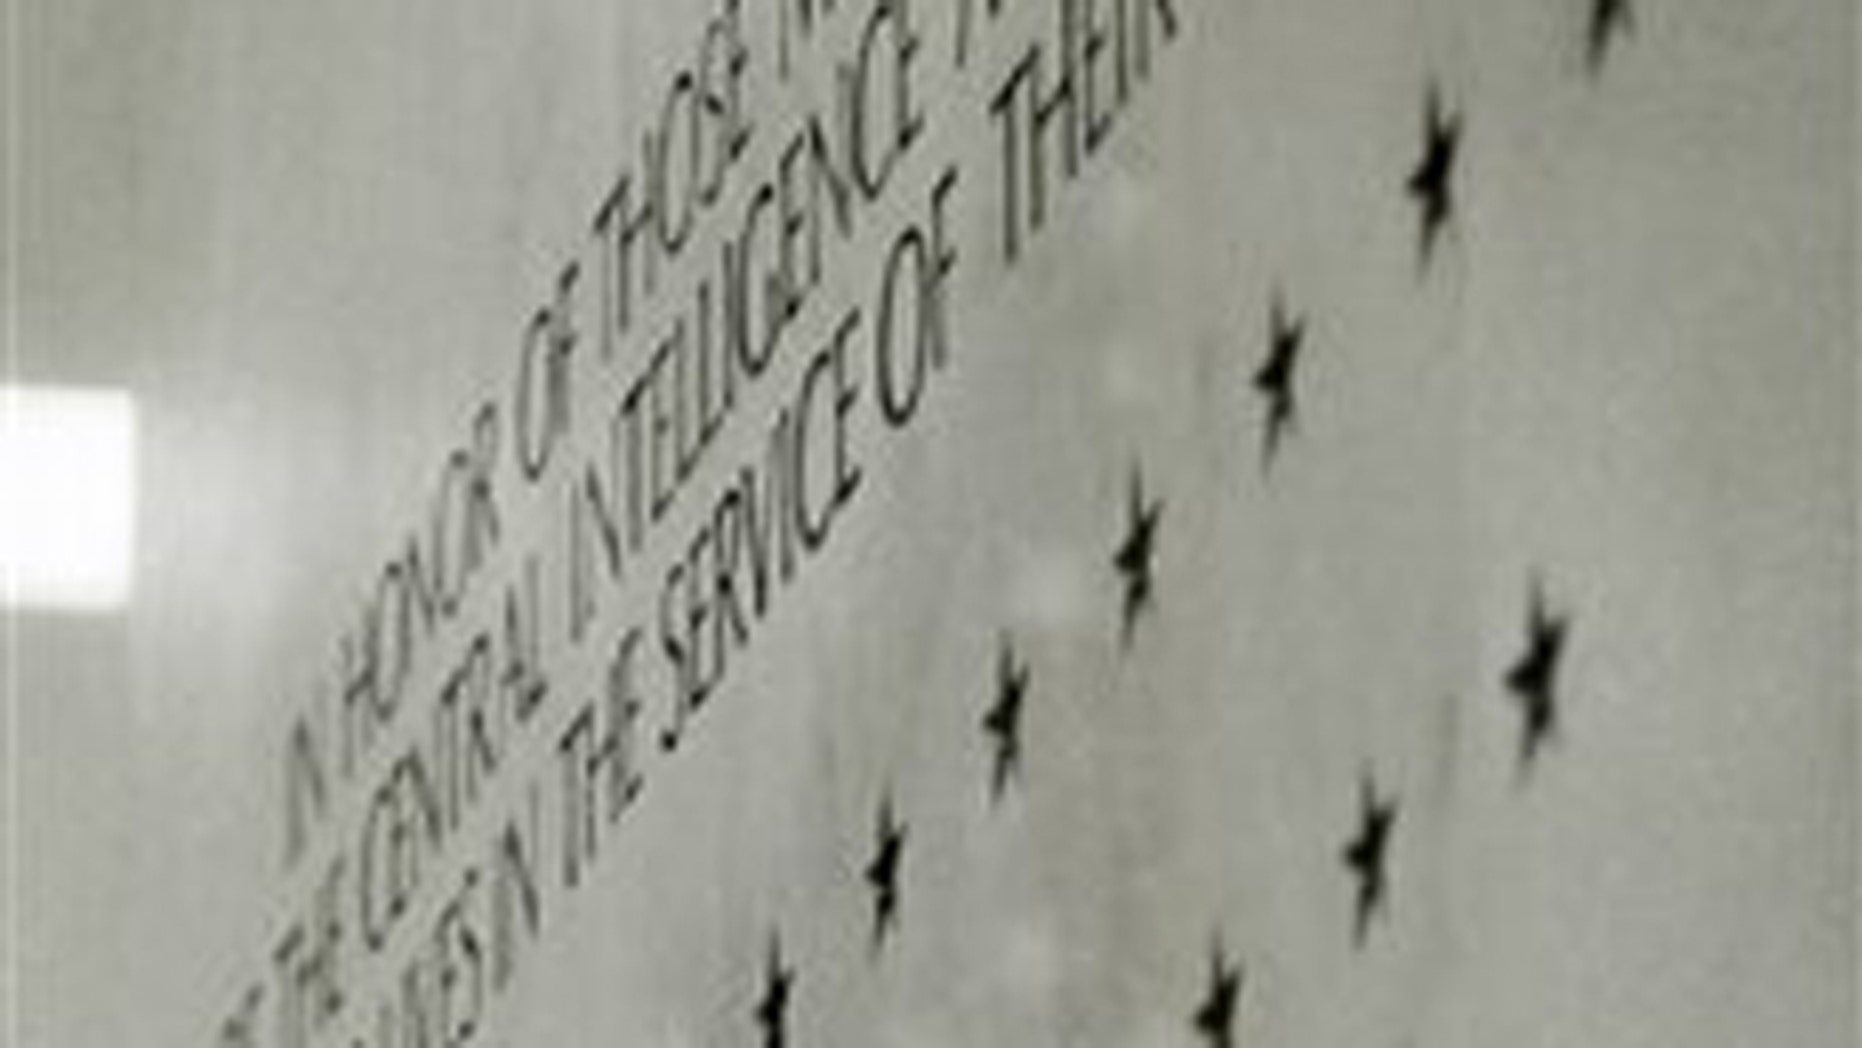 FILE: May 23, 2002: CIA memorial wall containing stars in the lobby of the Central Intelligence Agency headquarters in Langley, Va.